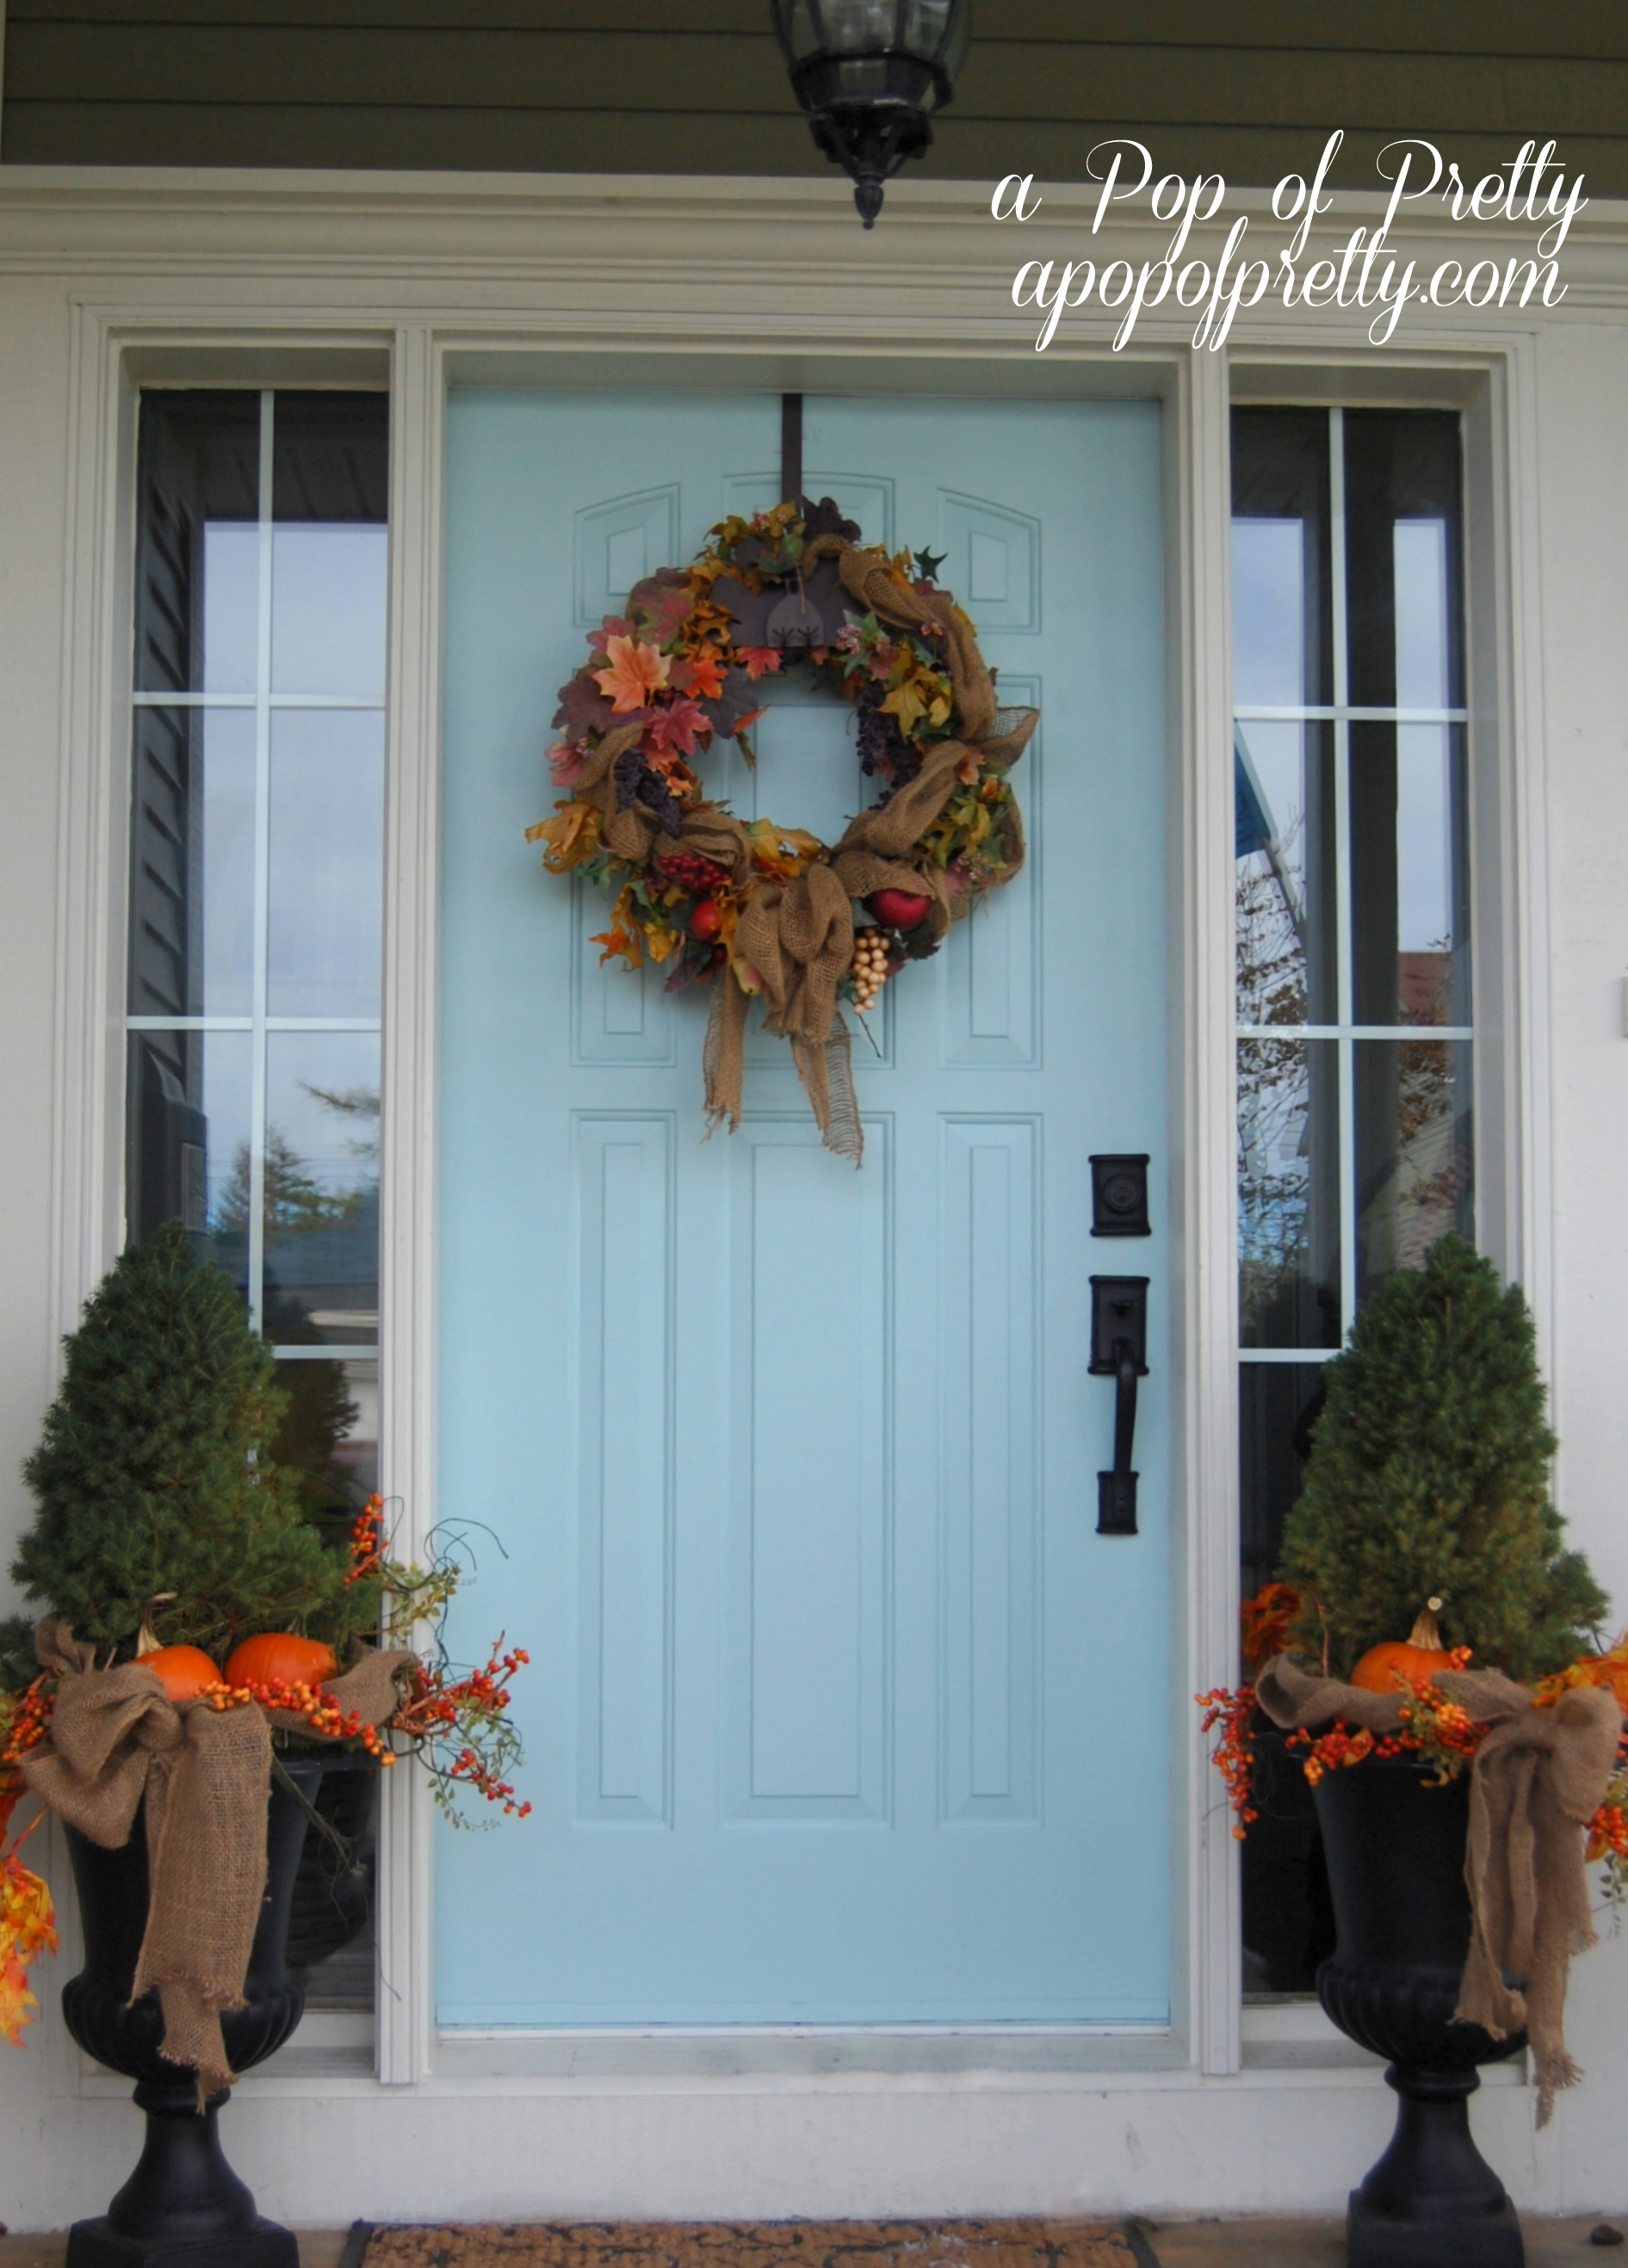 Canadian Home Decor Stores Decoration fall decorating front porch ideas  a pop of pretty blog (canadian